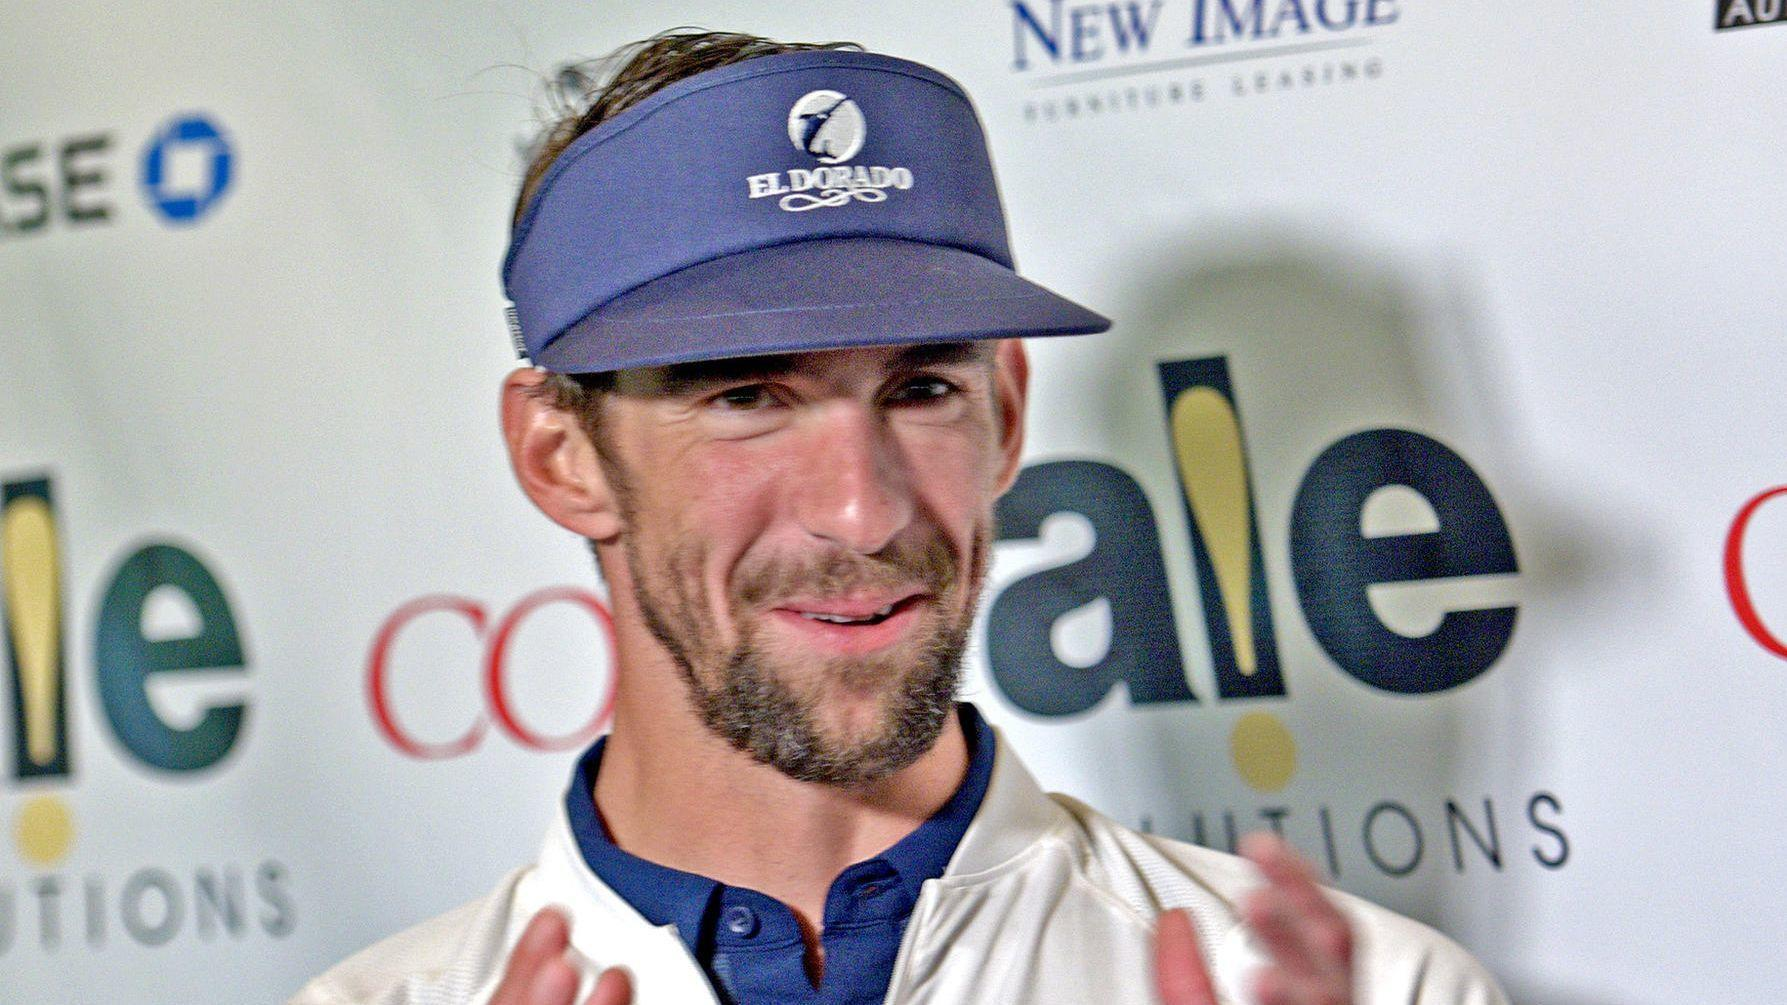 Q&A with Michael Phelps, in town for his charity event: On Tiger Woods, Brooks Koepka and golf's link to his wife getting pregnant